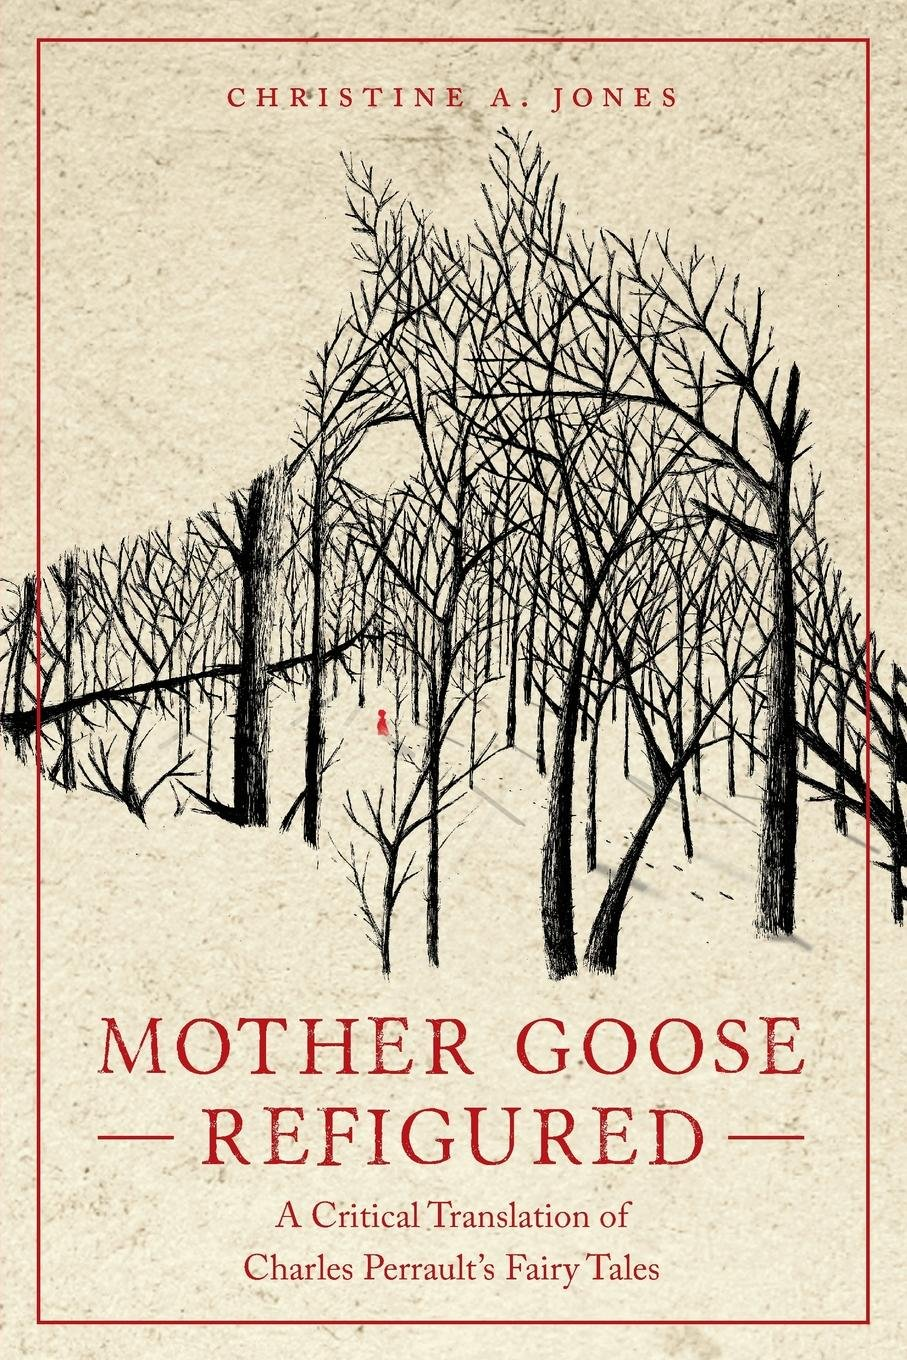 Mother Goose Refigured: A Critical Translation of Charles Perrault's Fairy Tales (Series in Fairy-Tale Studies)